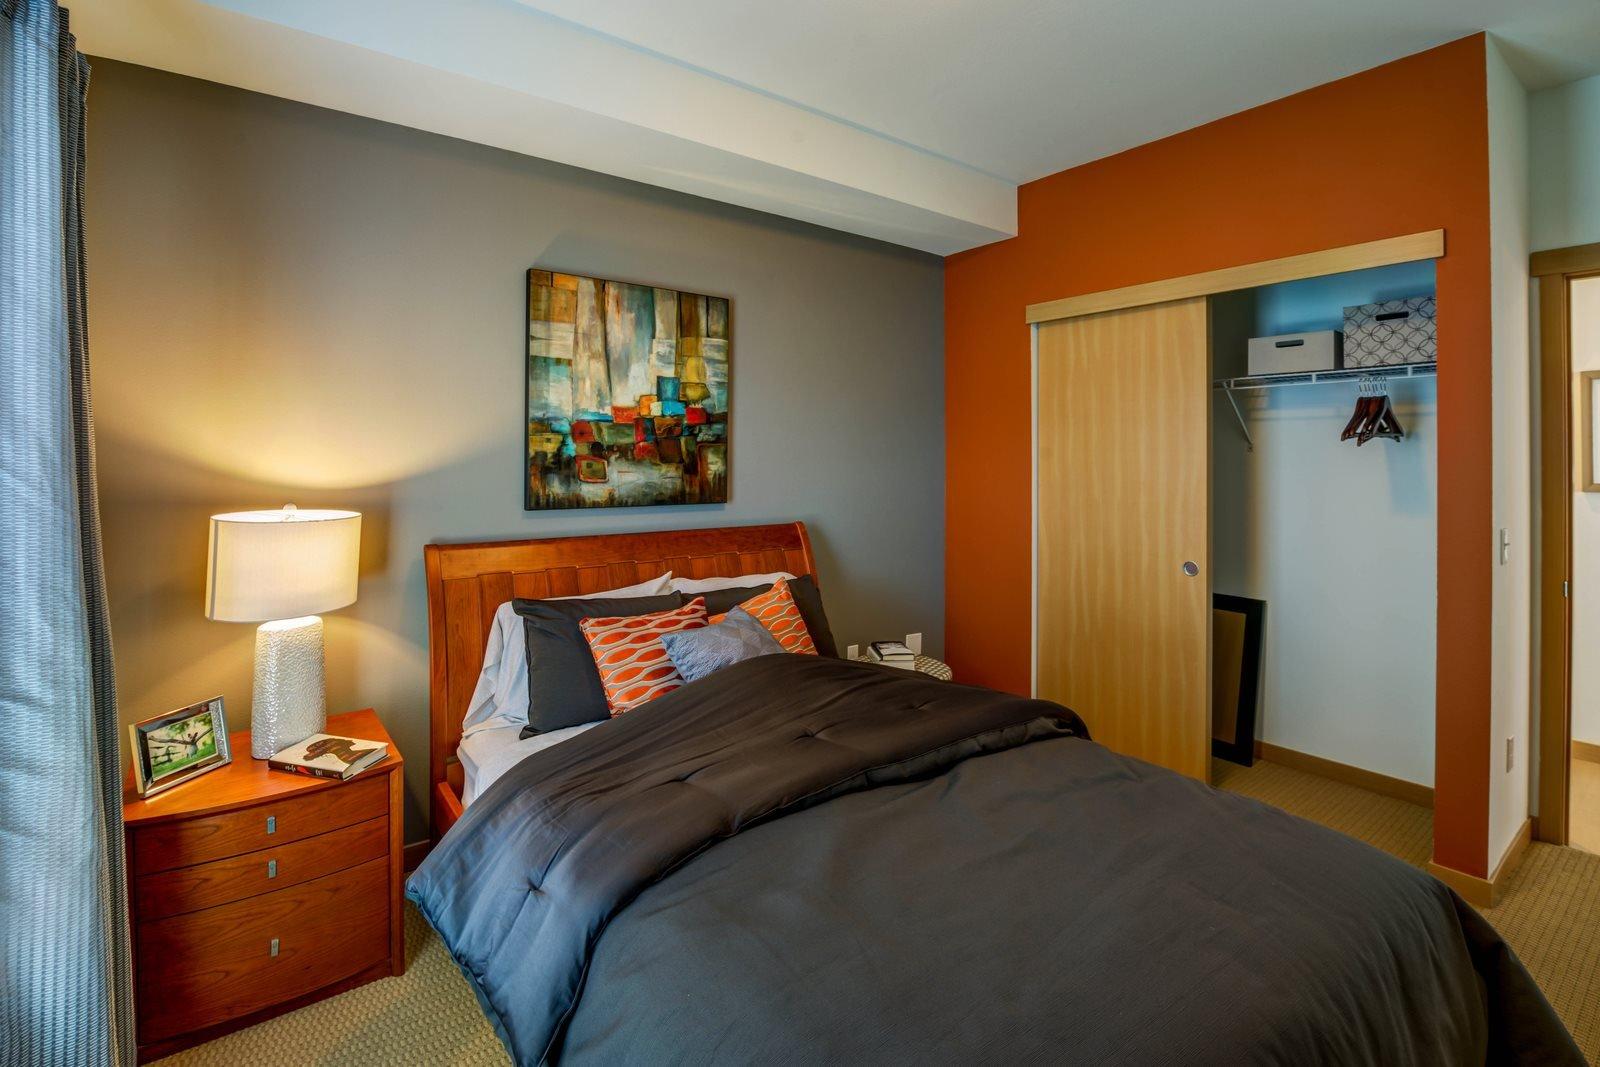 Live in cozy bedrooms at Altia Apartments, Lynnwood, WA,98037